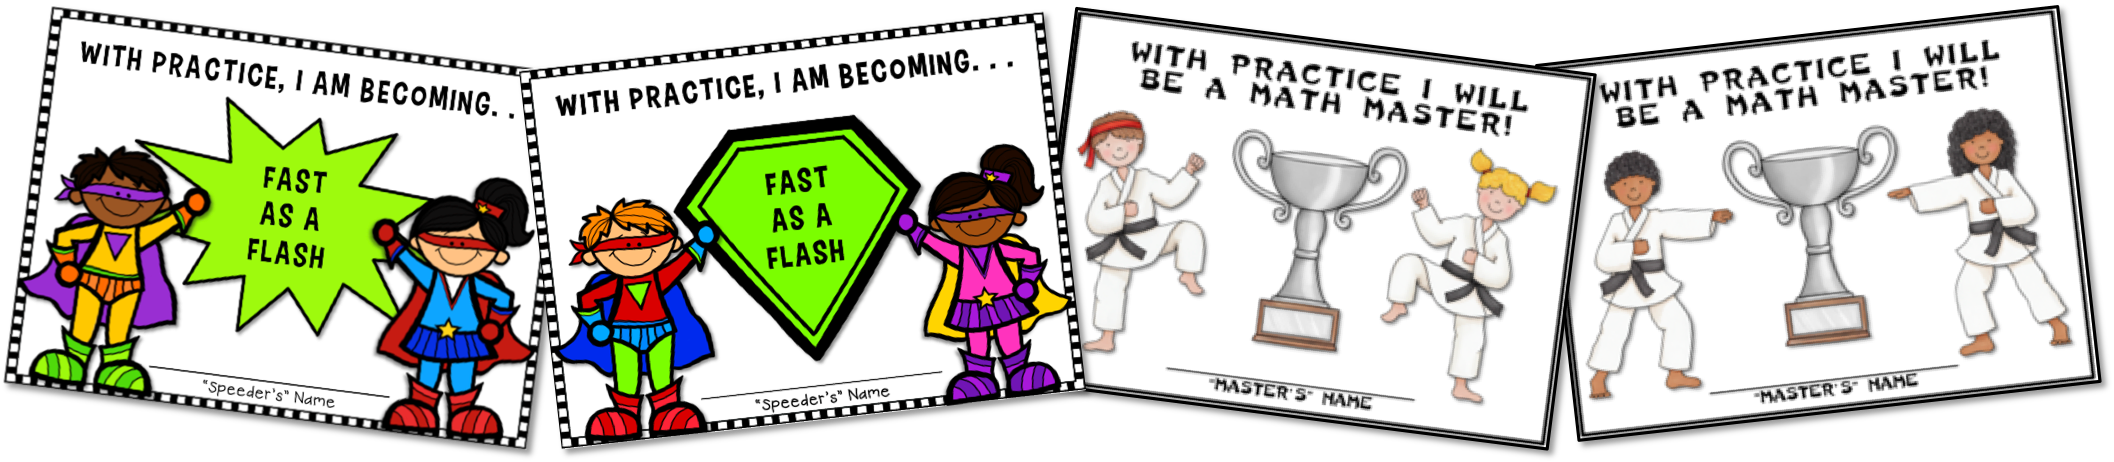 Superhero and karate awards to motivate math fact mastery.